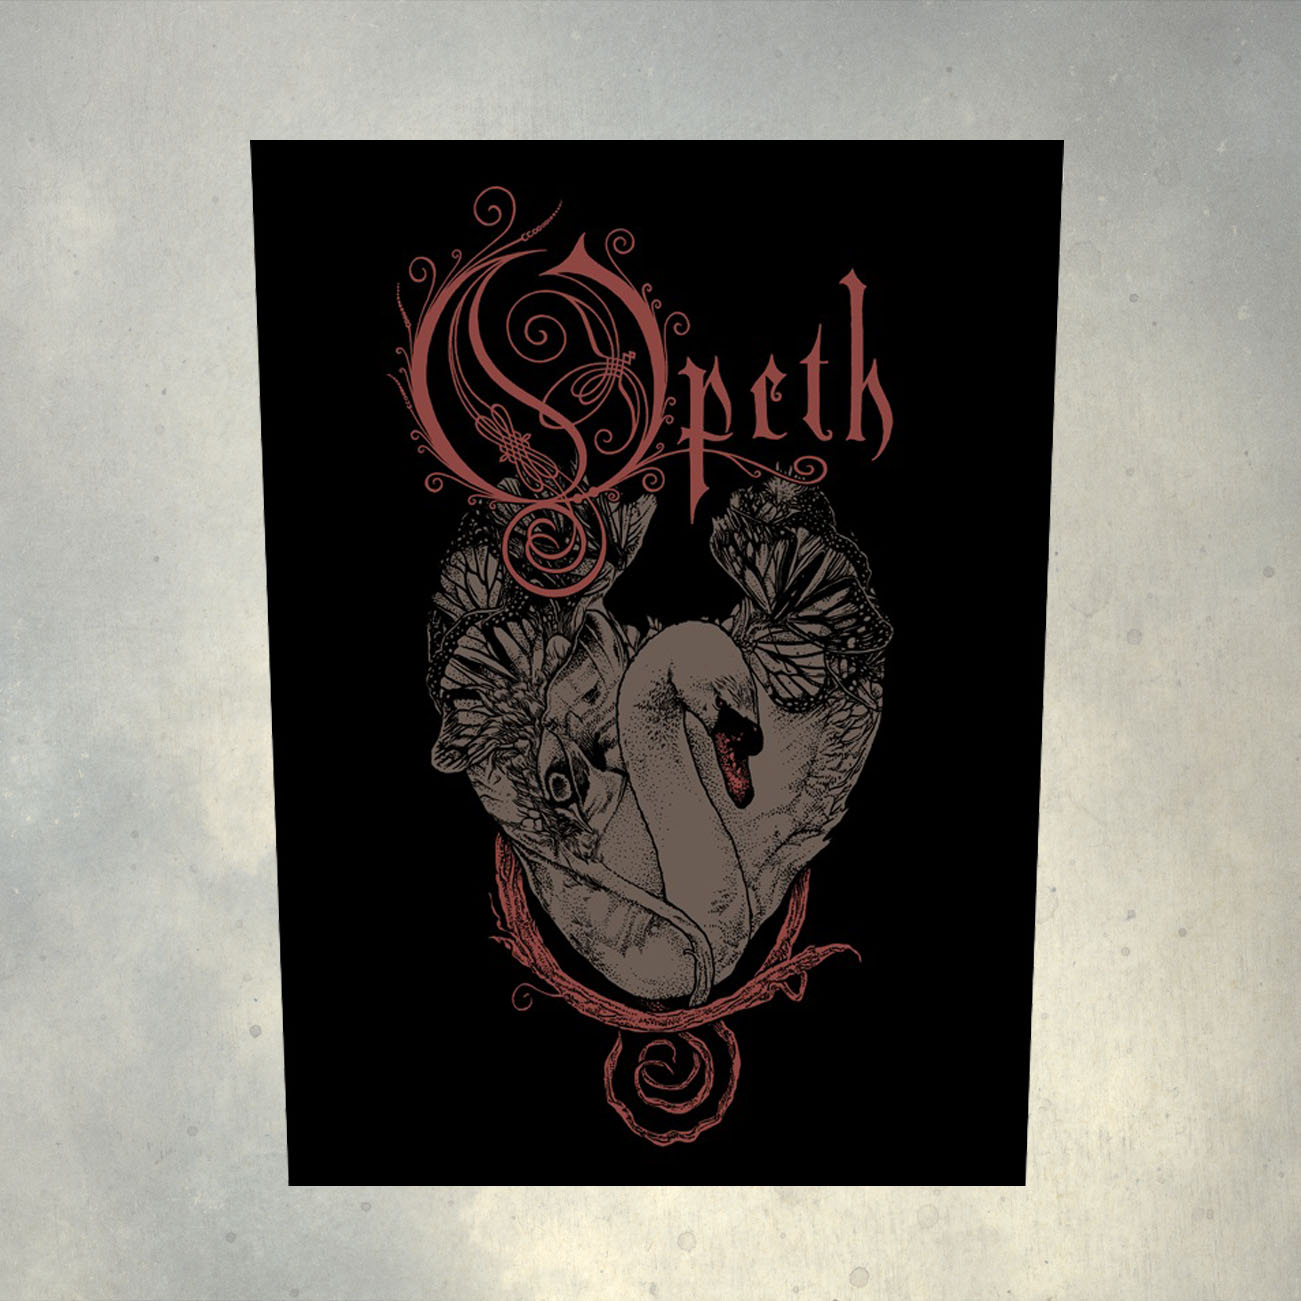 Opeth - 'Swan' Back Patch - Opeth